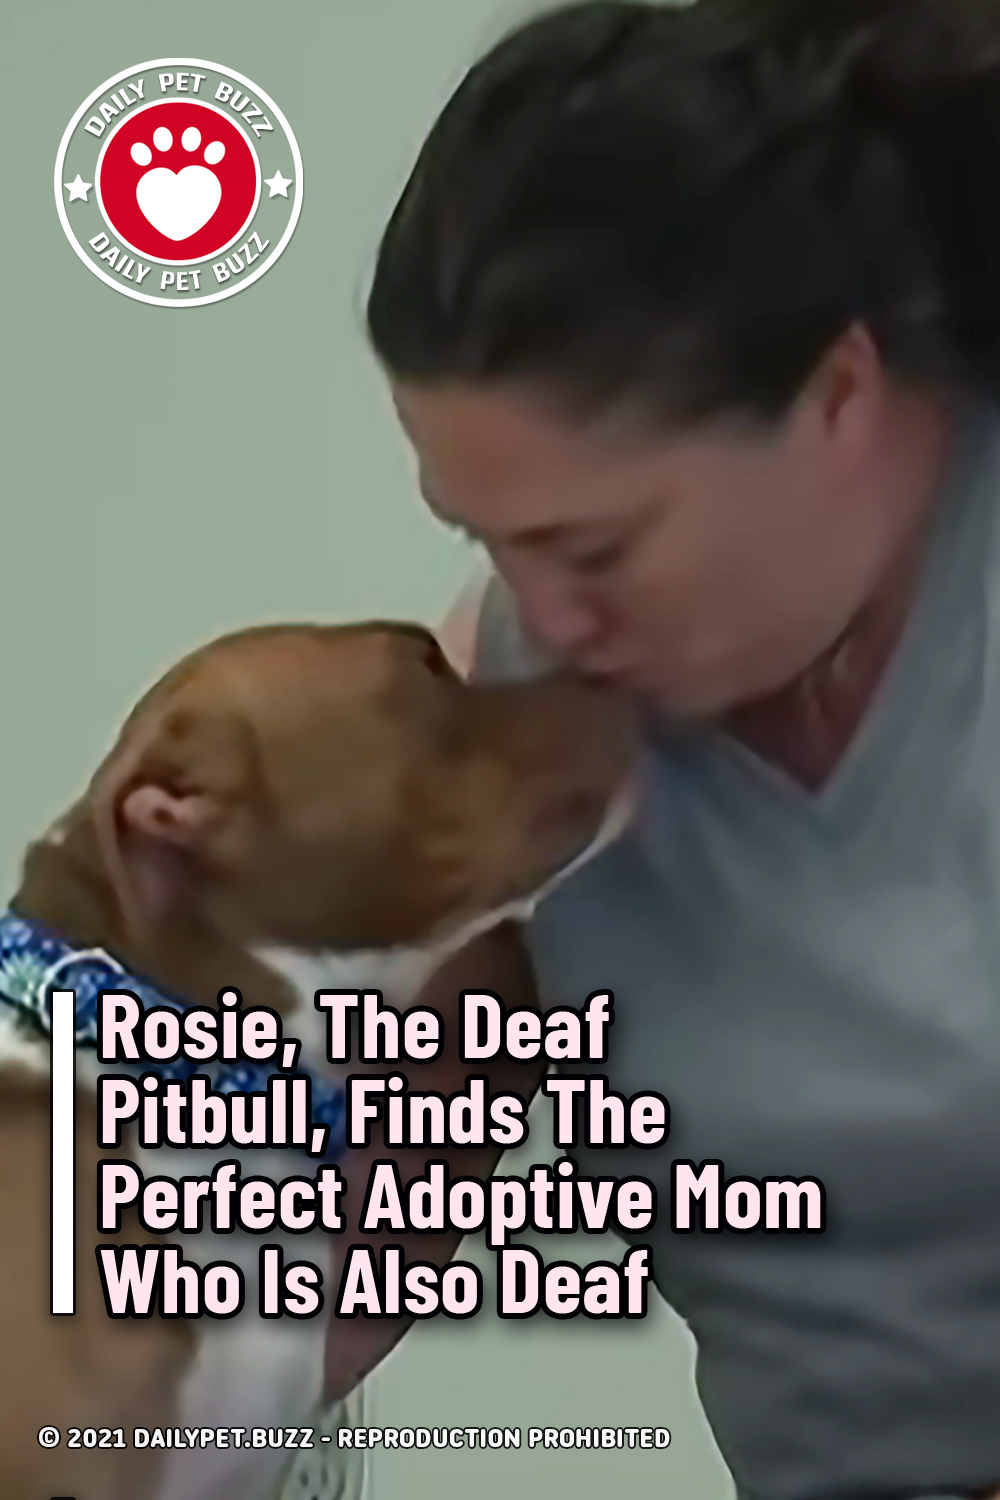 Rosie, The Deaf Pitbull, Finds The Perfect Adoptive Mom Who Is Also Deaf